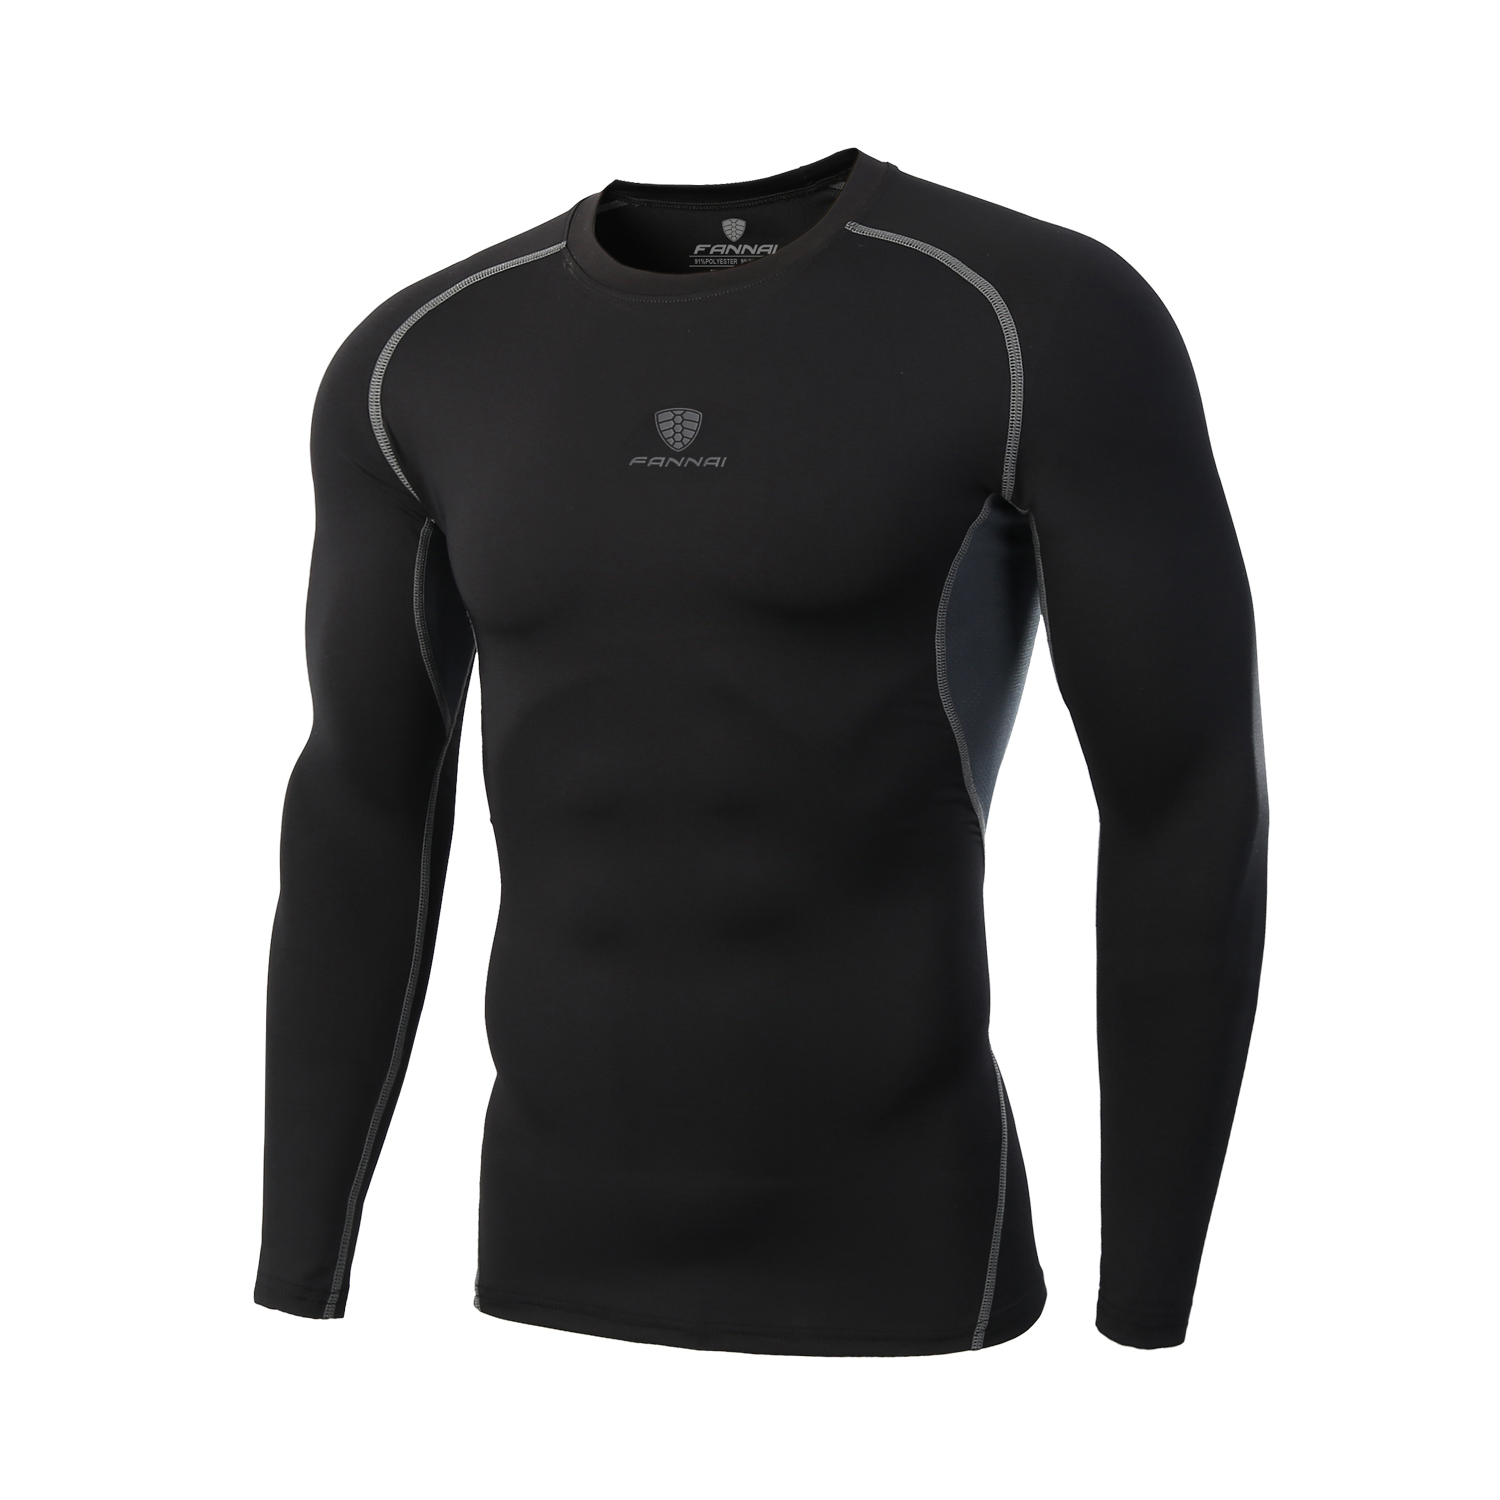 Mens Compression Running T Shirts Bodybuilding Skin Tight Long Sleeves Jerseys Clothing Exercise Workout Fitness Sportswear